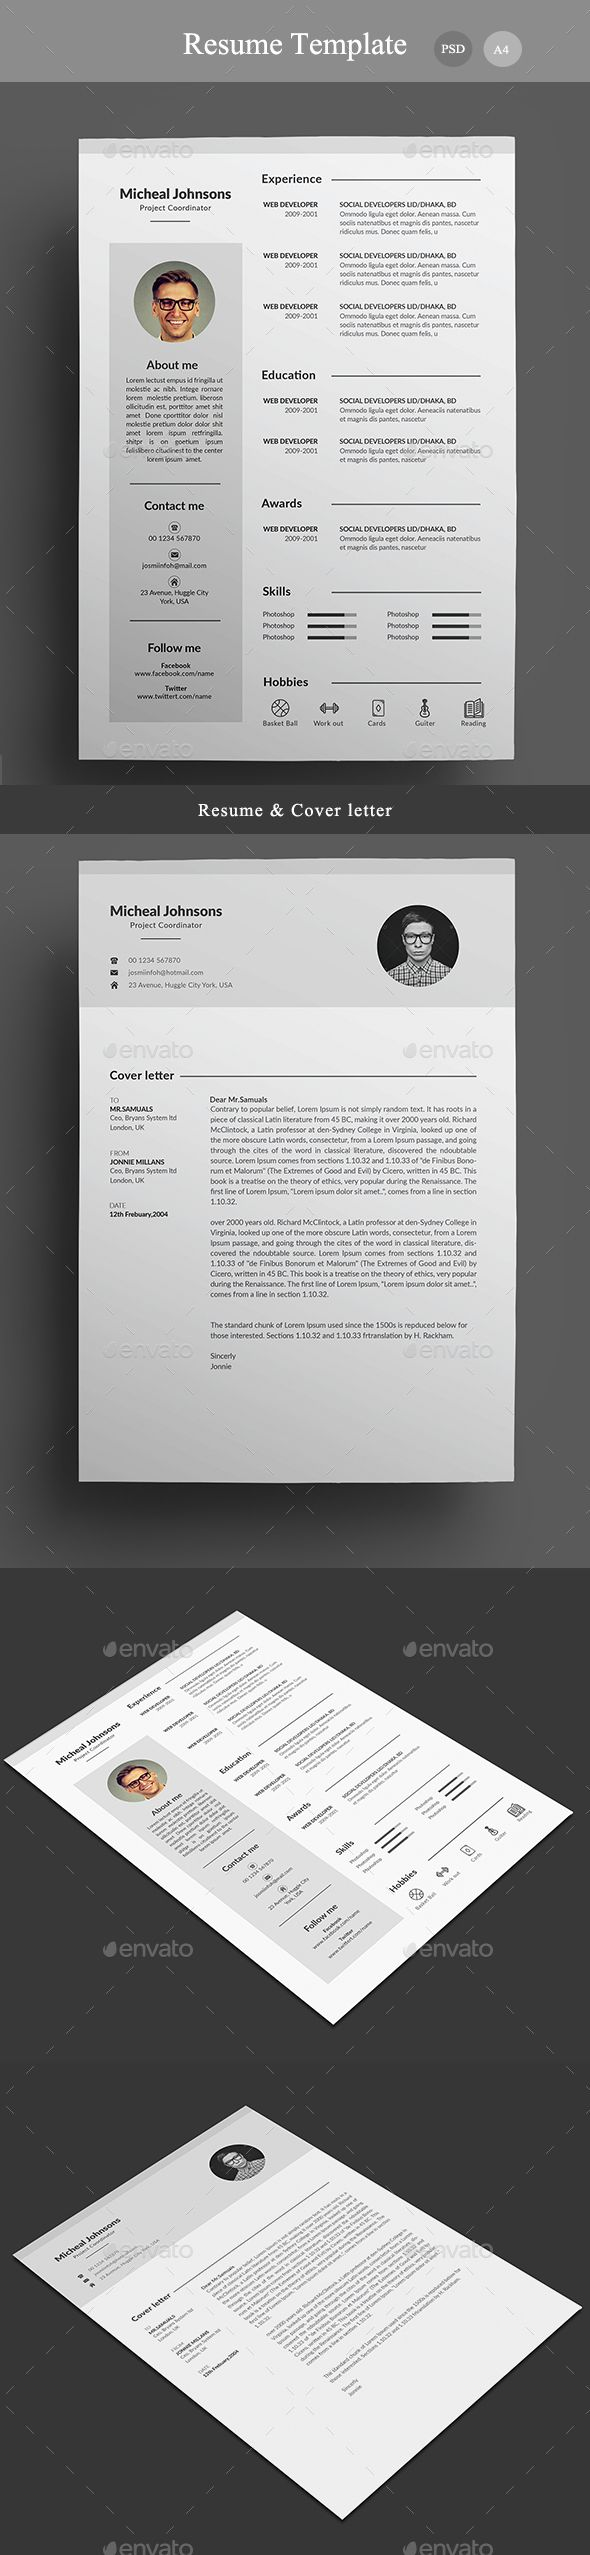 Microsoft office cover letter templates picture ideas references microsoft office cover letter templates resume u cover letter template psd ms word madrichimfo Images